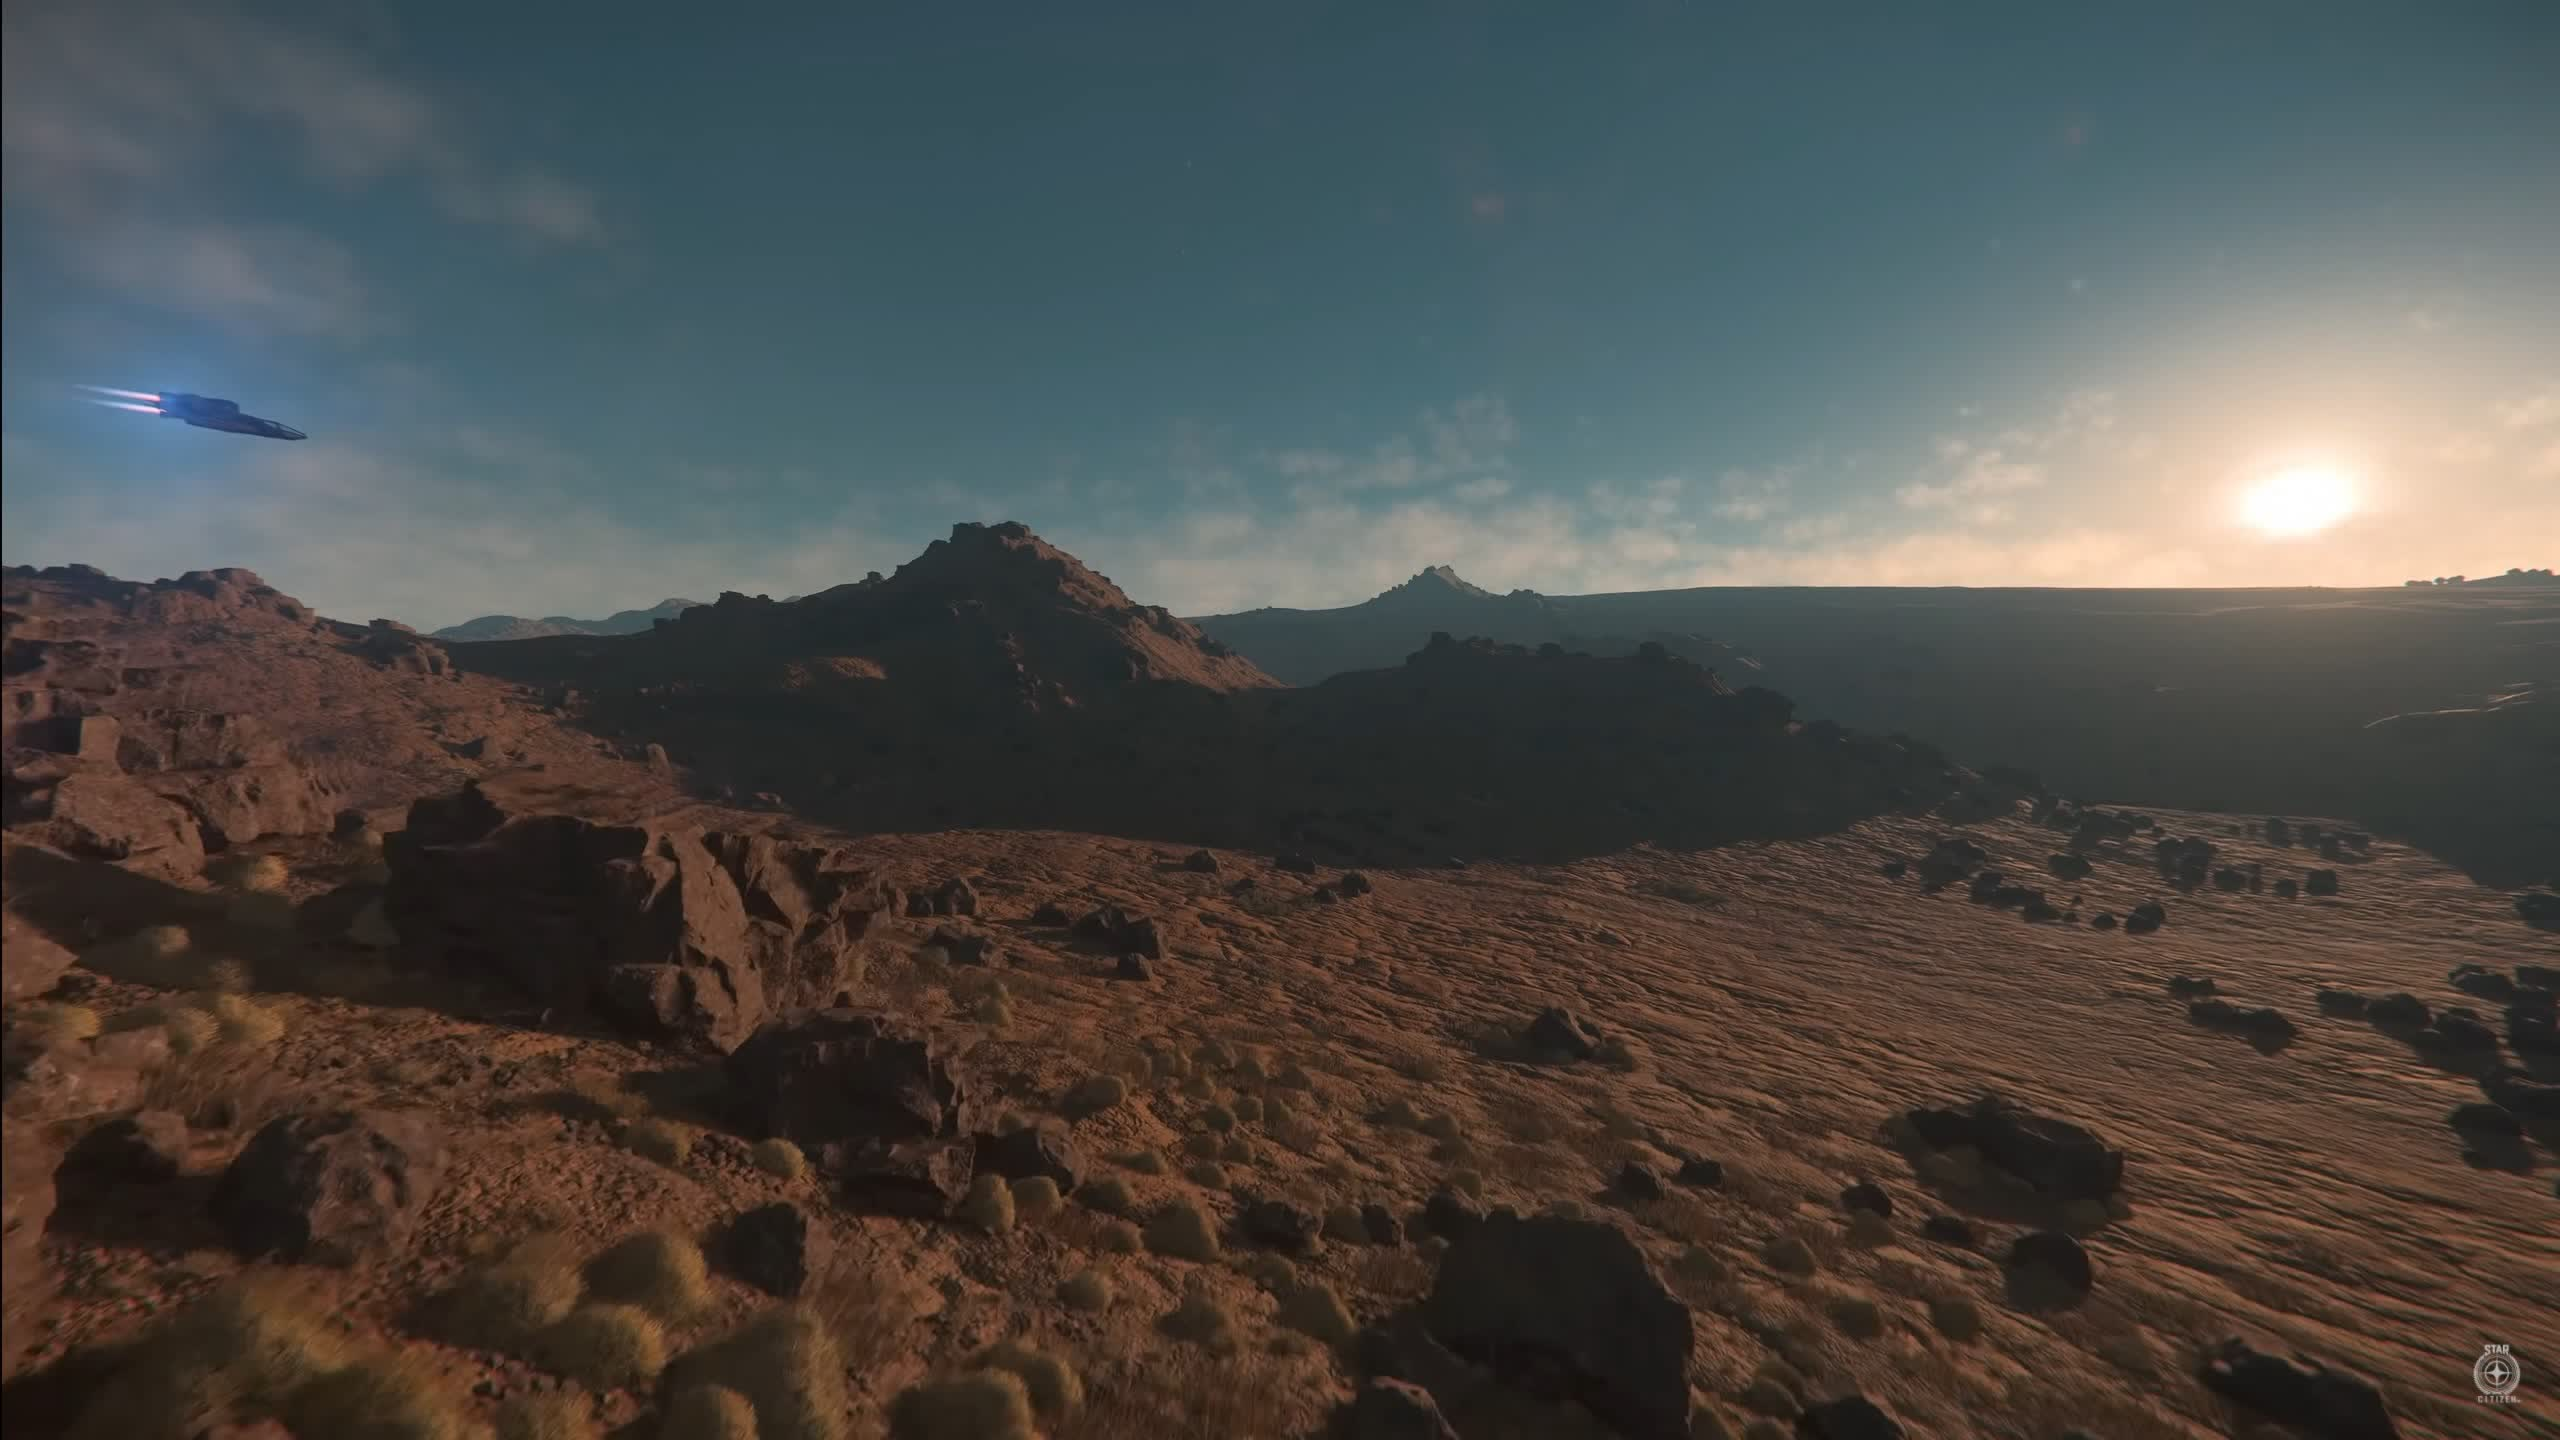 Star Citizen event shows off new content, but a release date and Squadron 42 remain absent